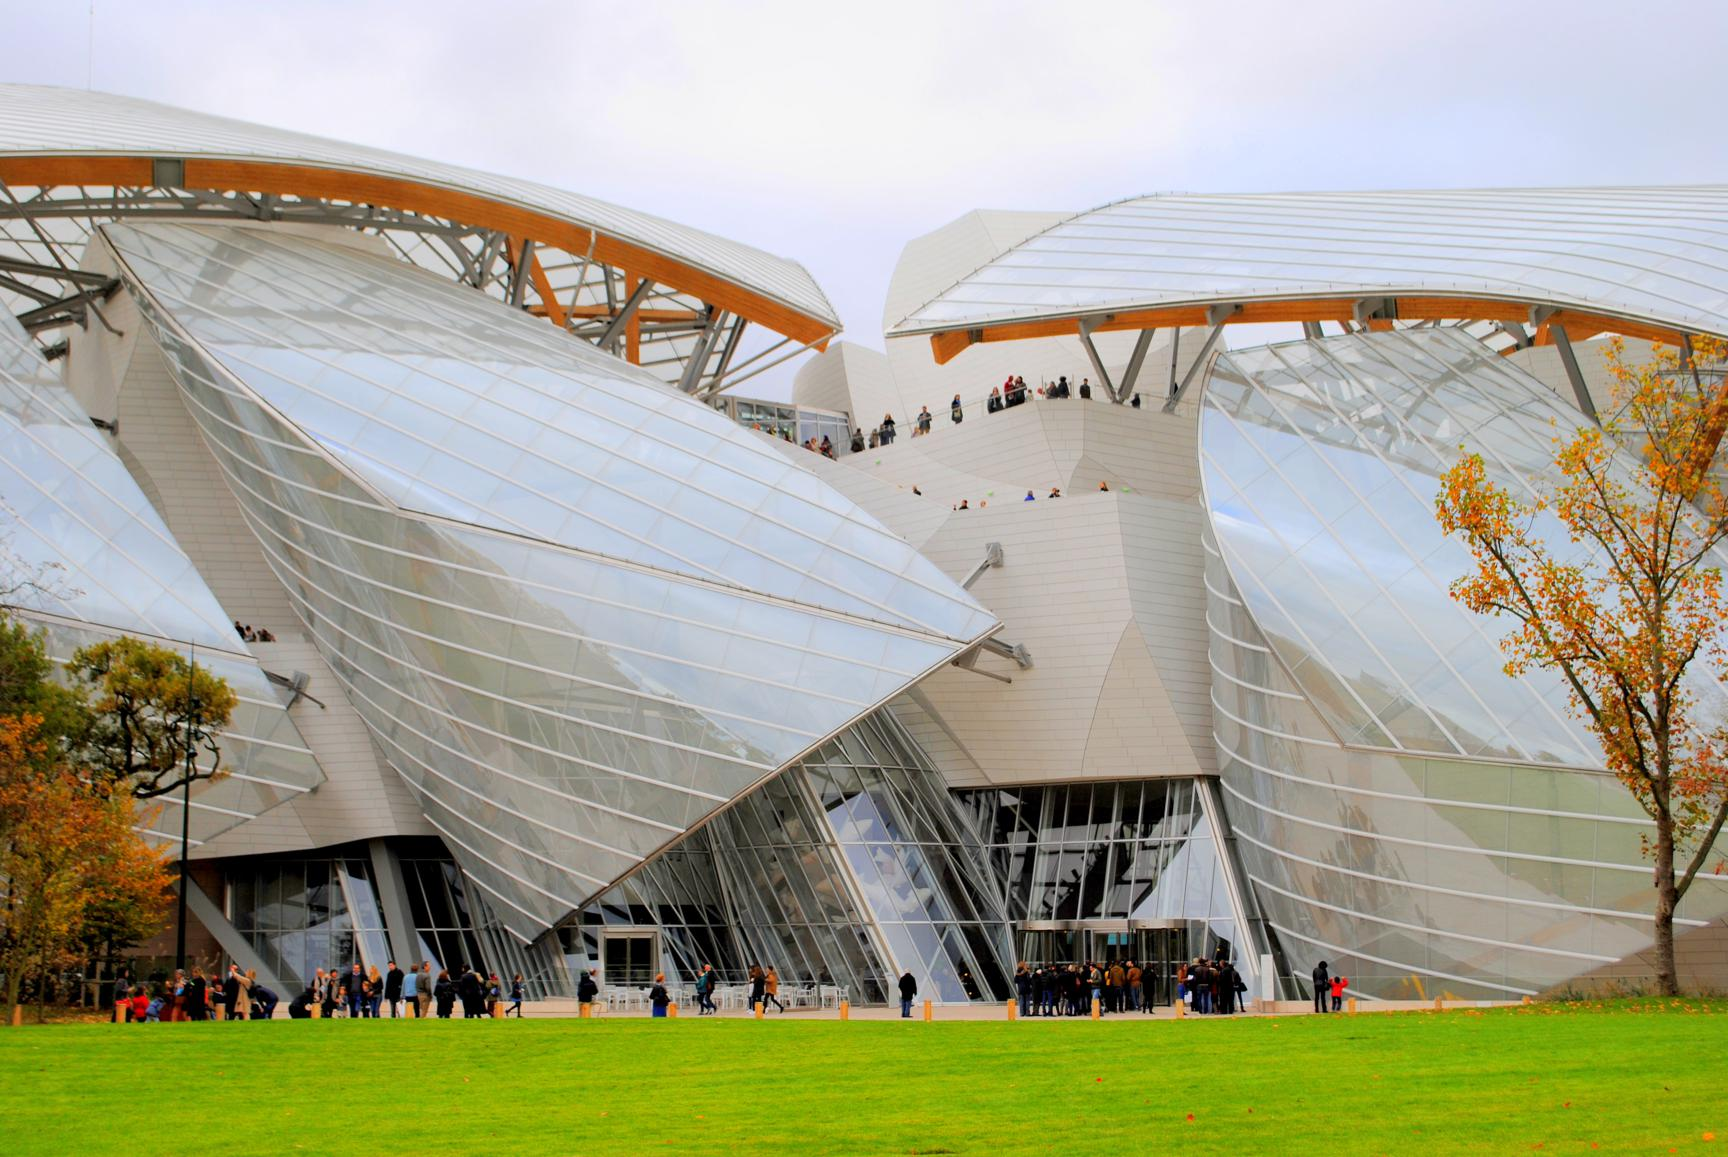 luois-vuitton-frank-gehry-1